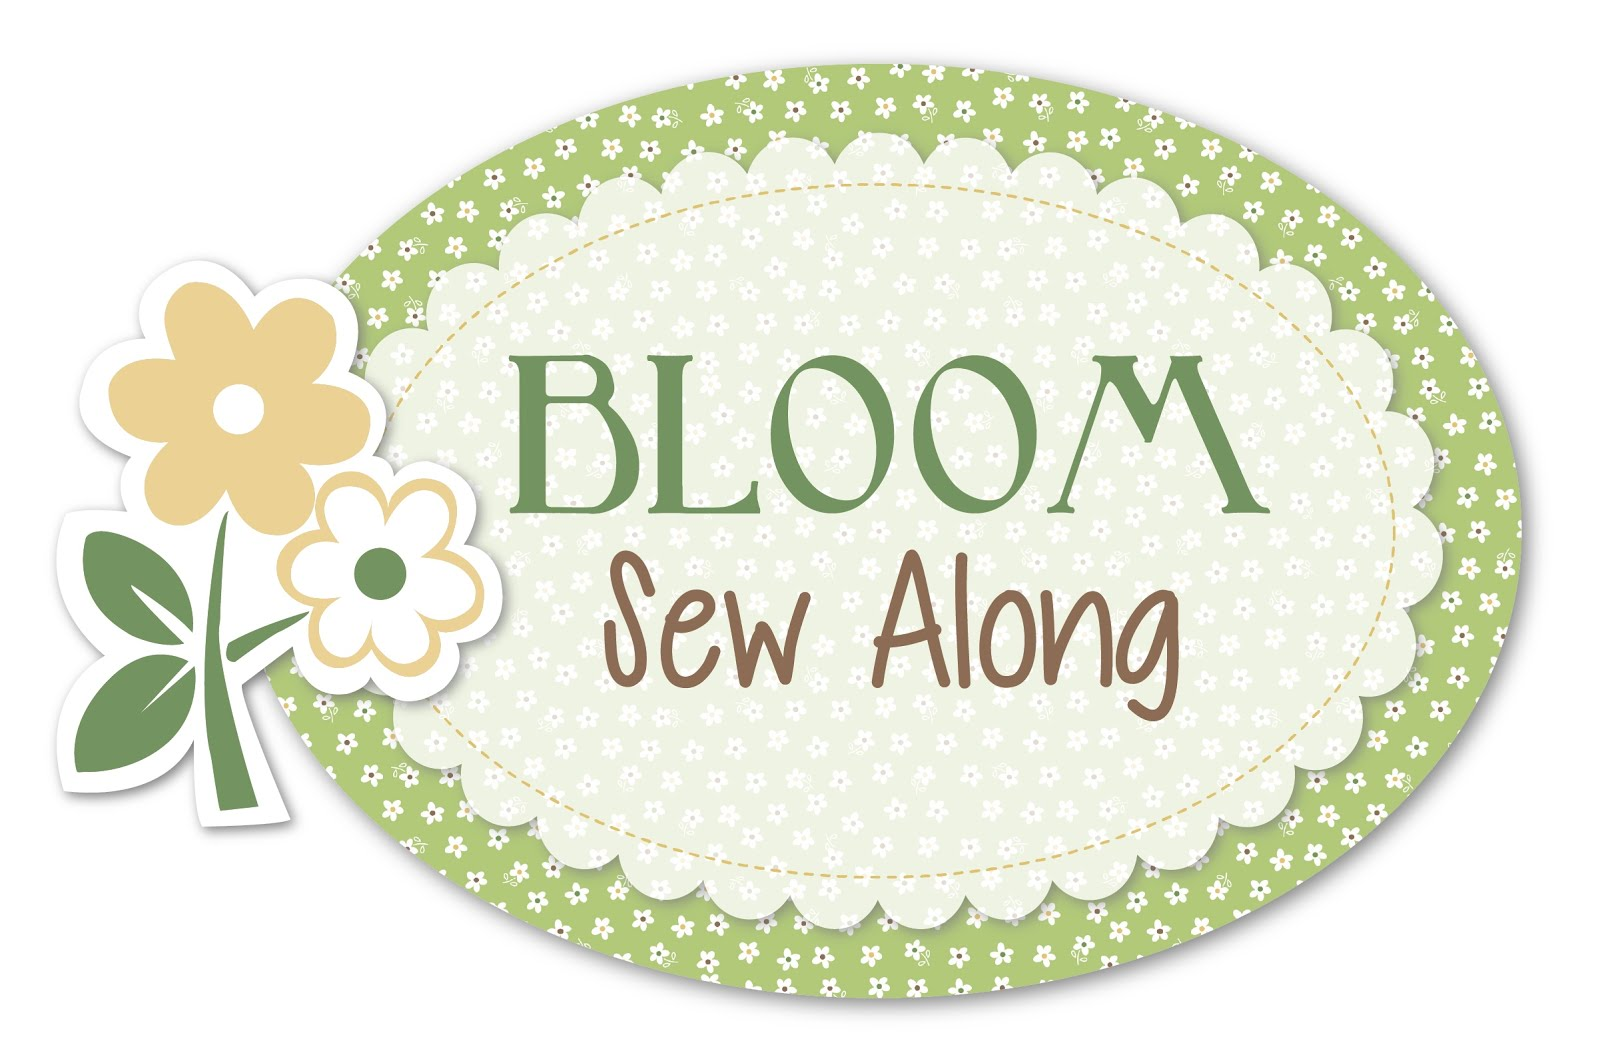 New Sew Along!